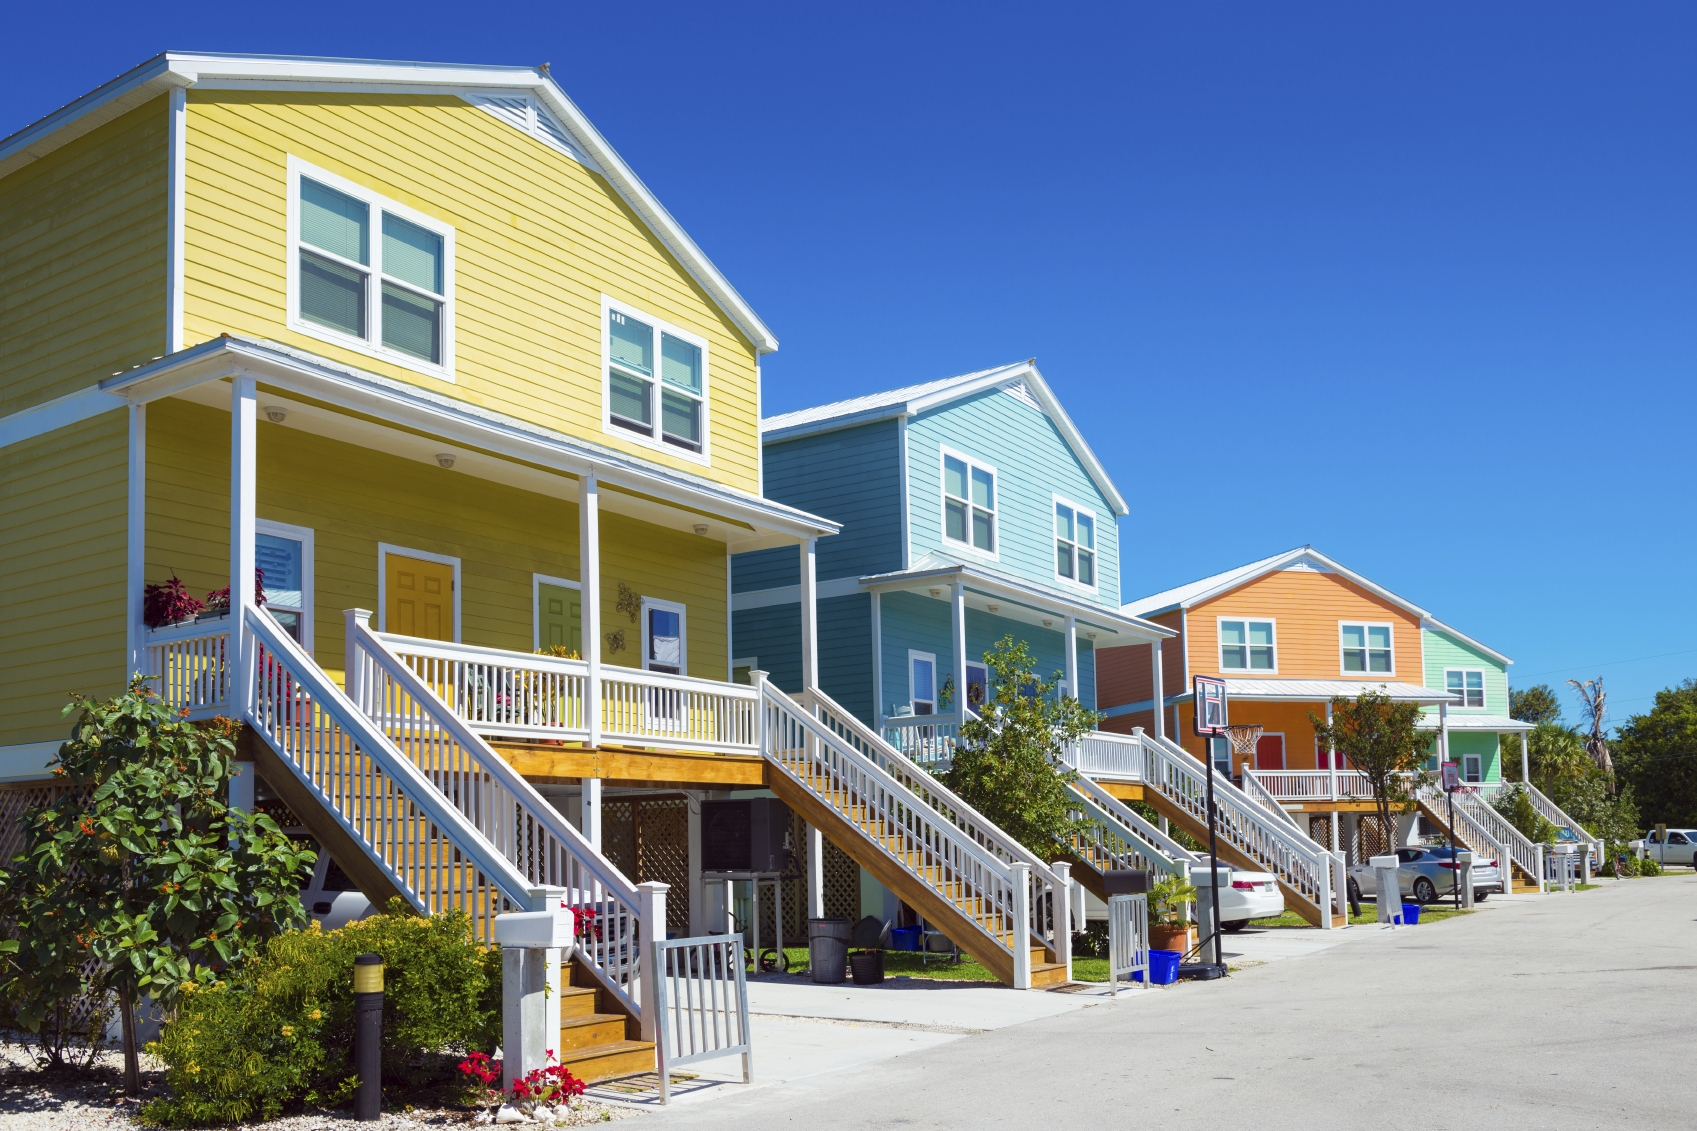 8 Things To Consider Before Purchasing A Vacation Home